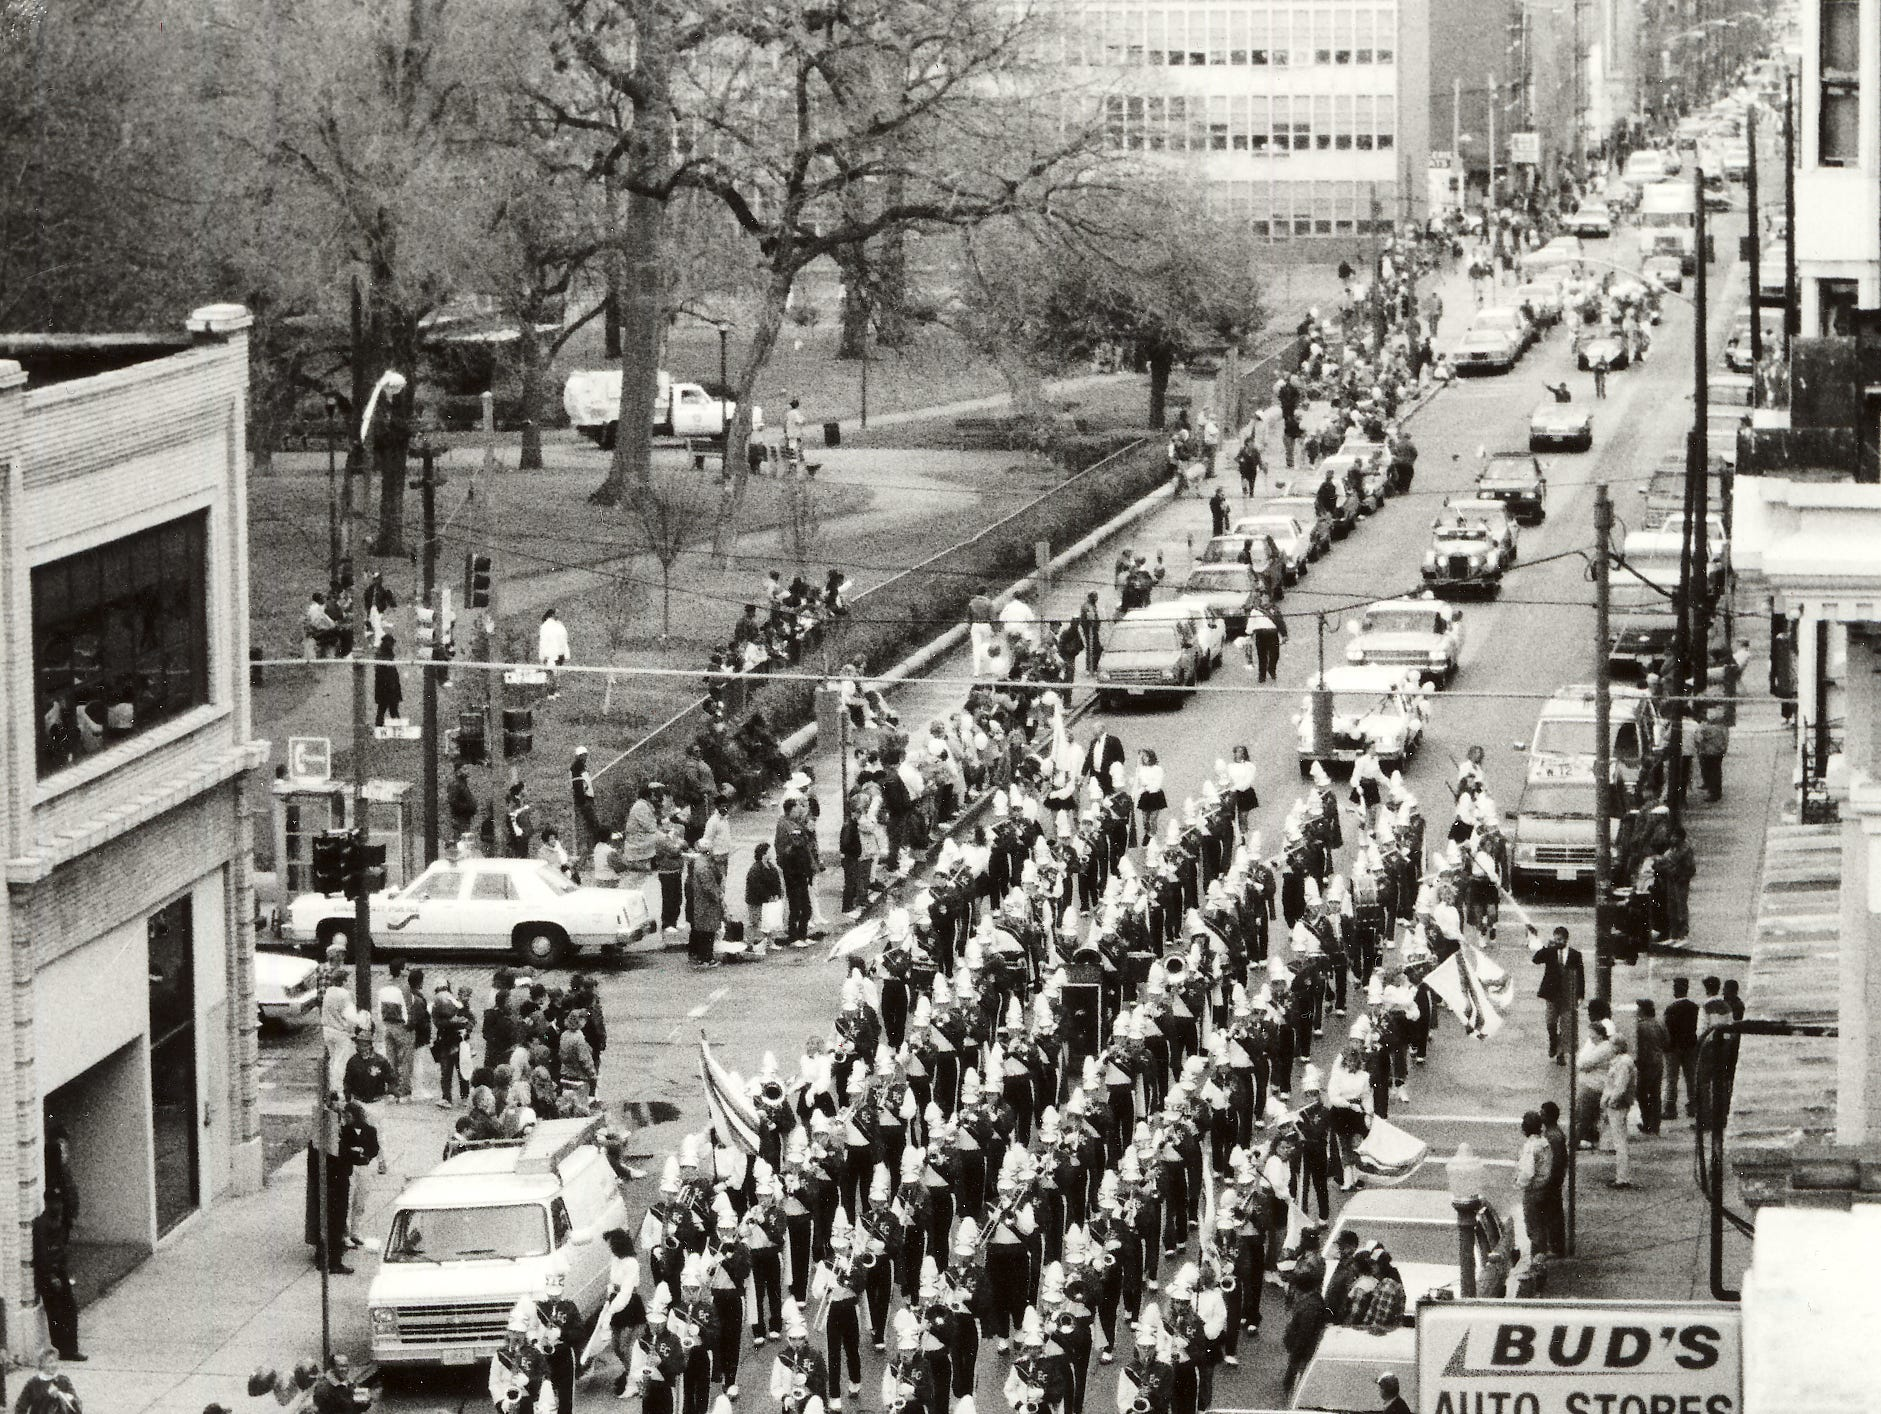 The lone marching band - from East Central - led the 1990 Findlay Market Parade on April 17, 1990. The parade was originally cancelled because of a labor dispute in baseball, which wasn't resolved until March 19.